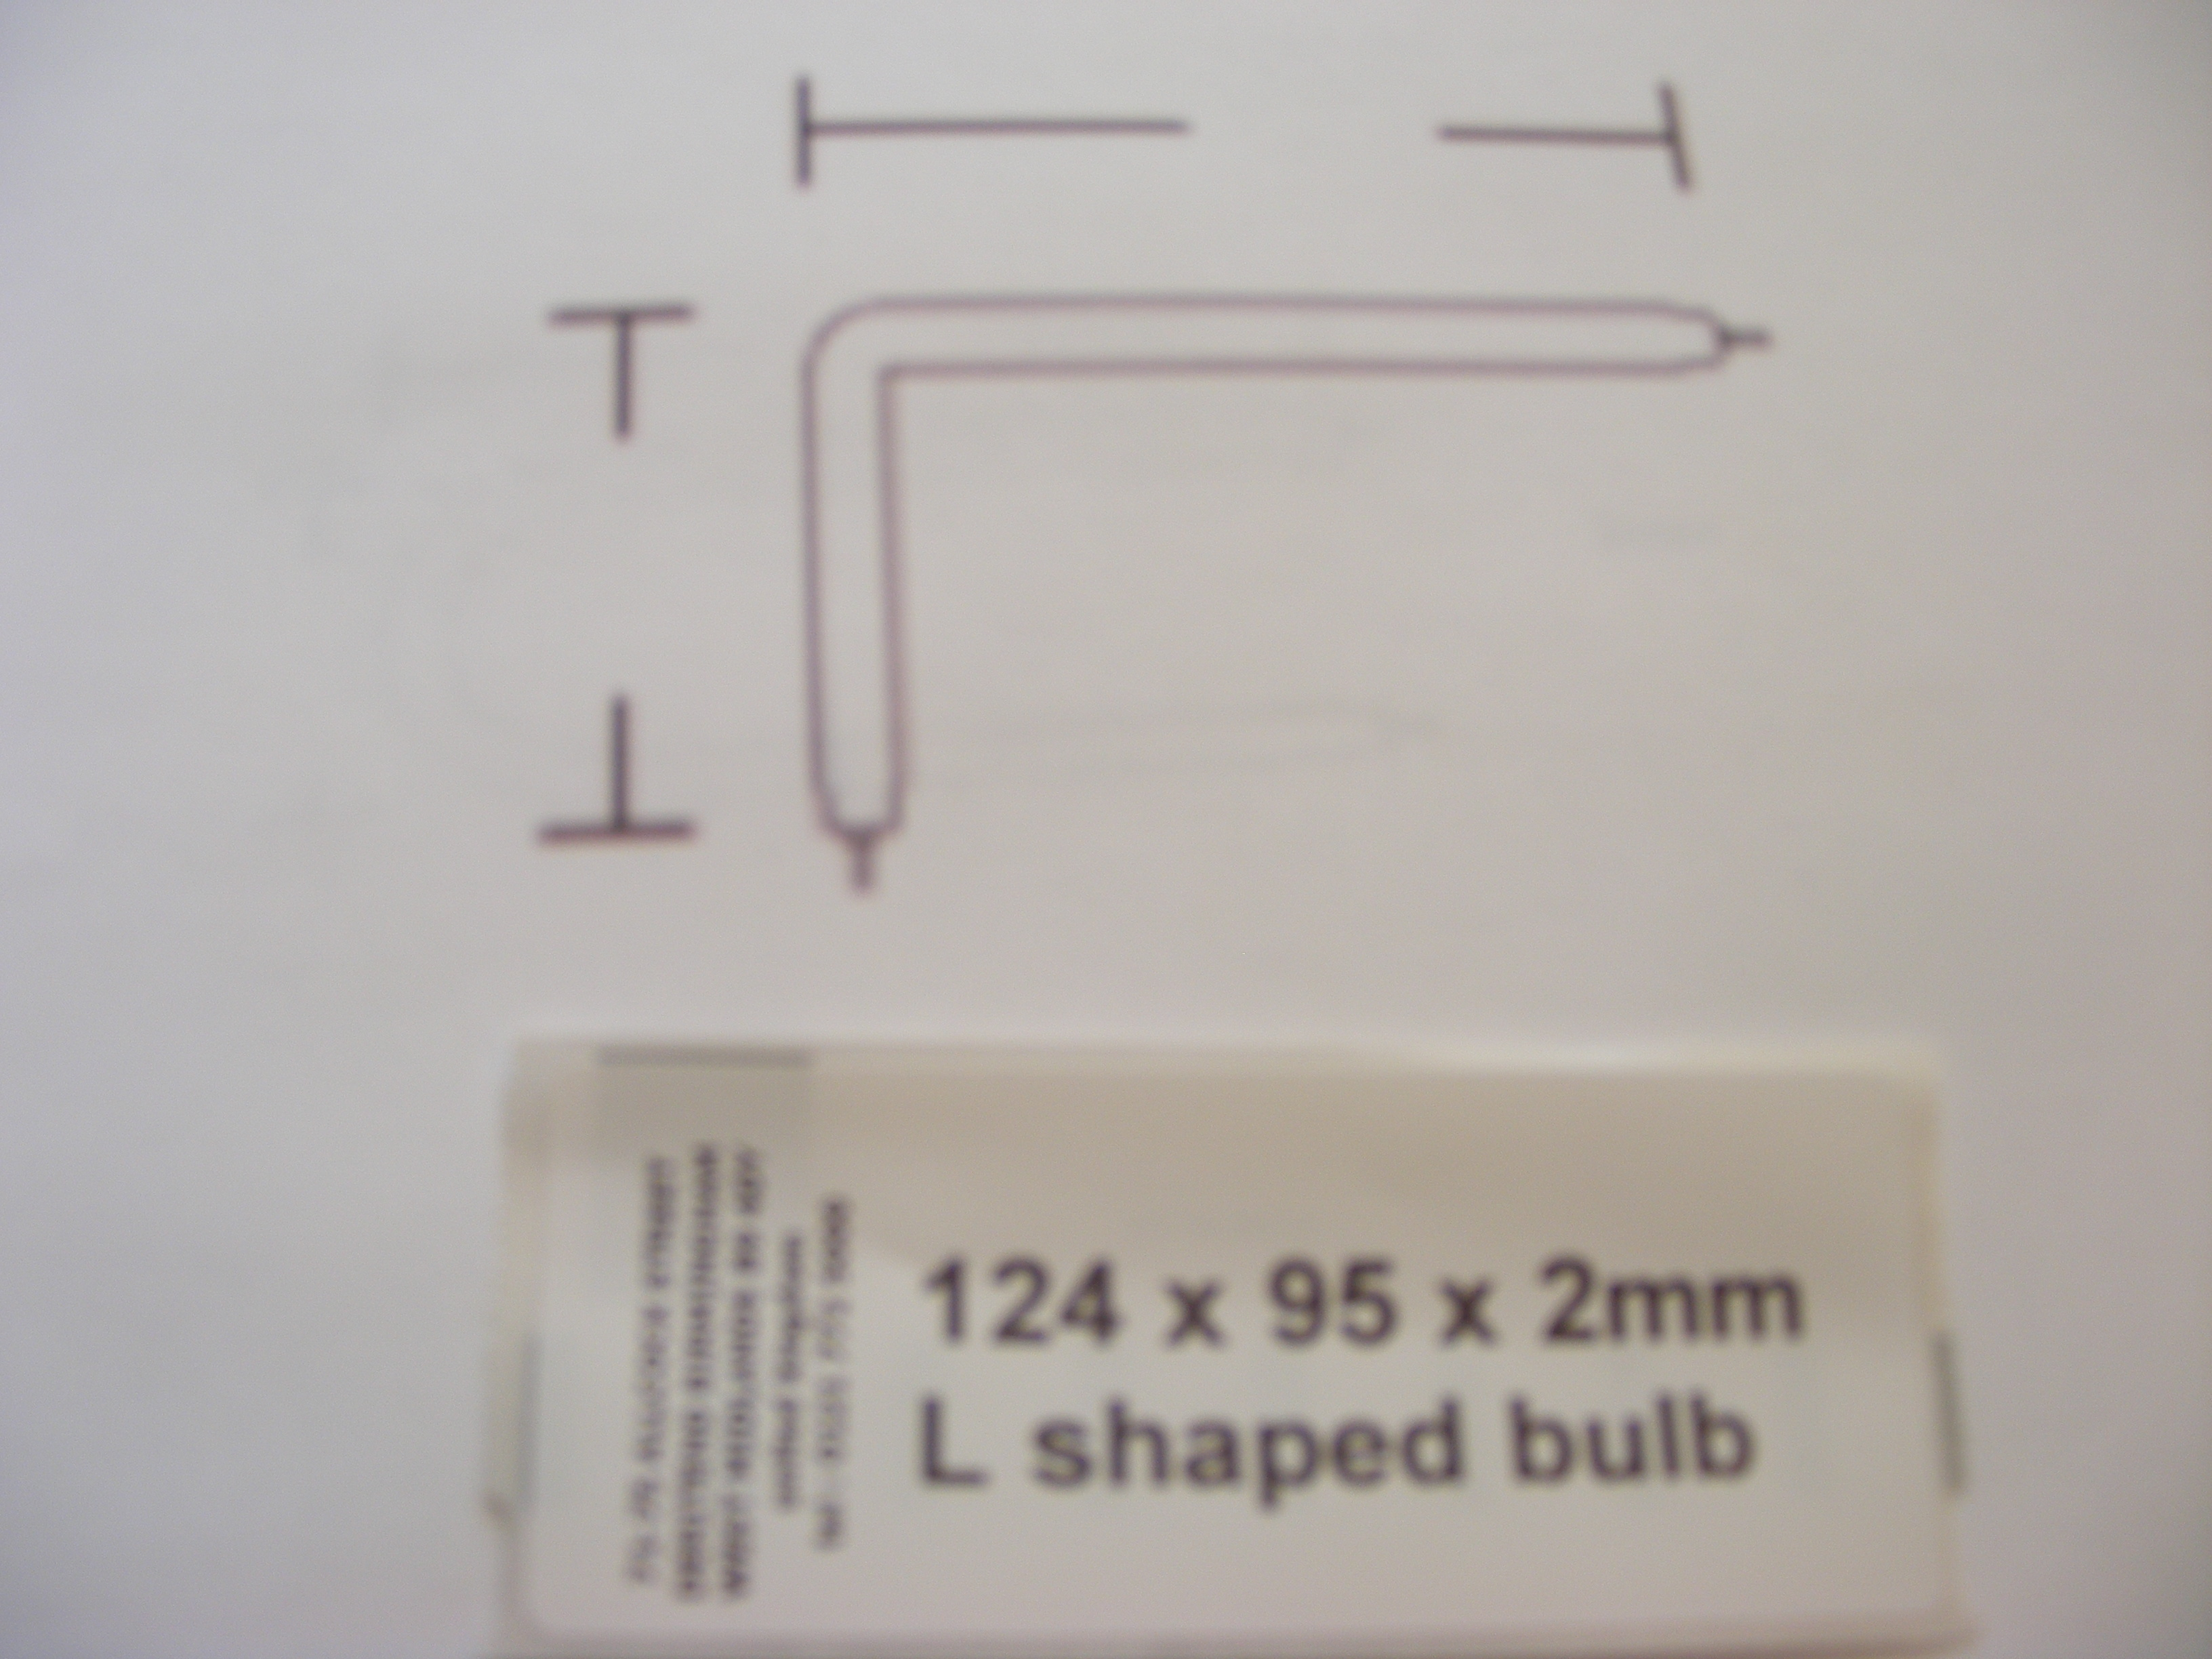 124 x 95 x 2mm L shaped bulb